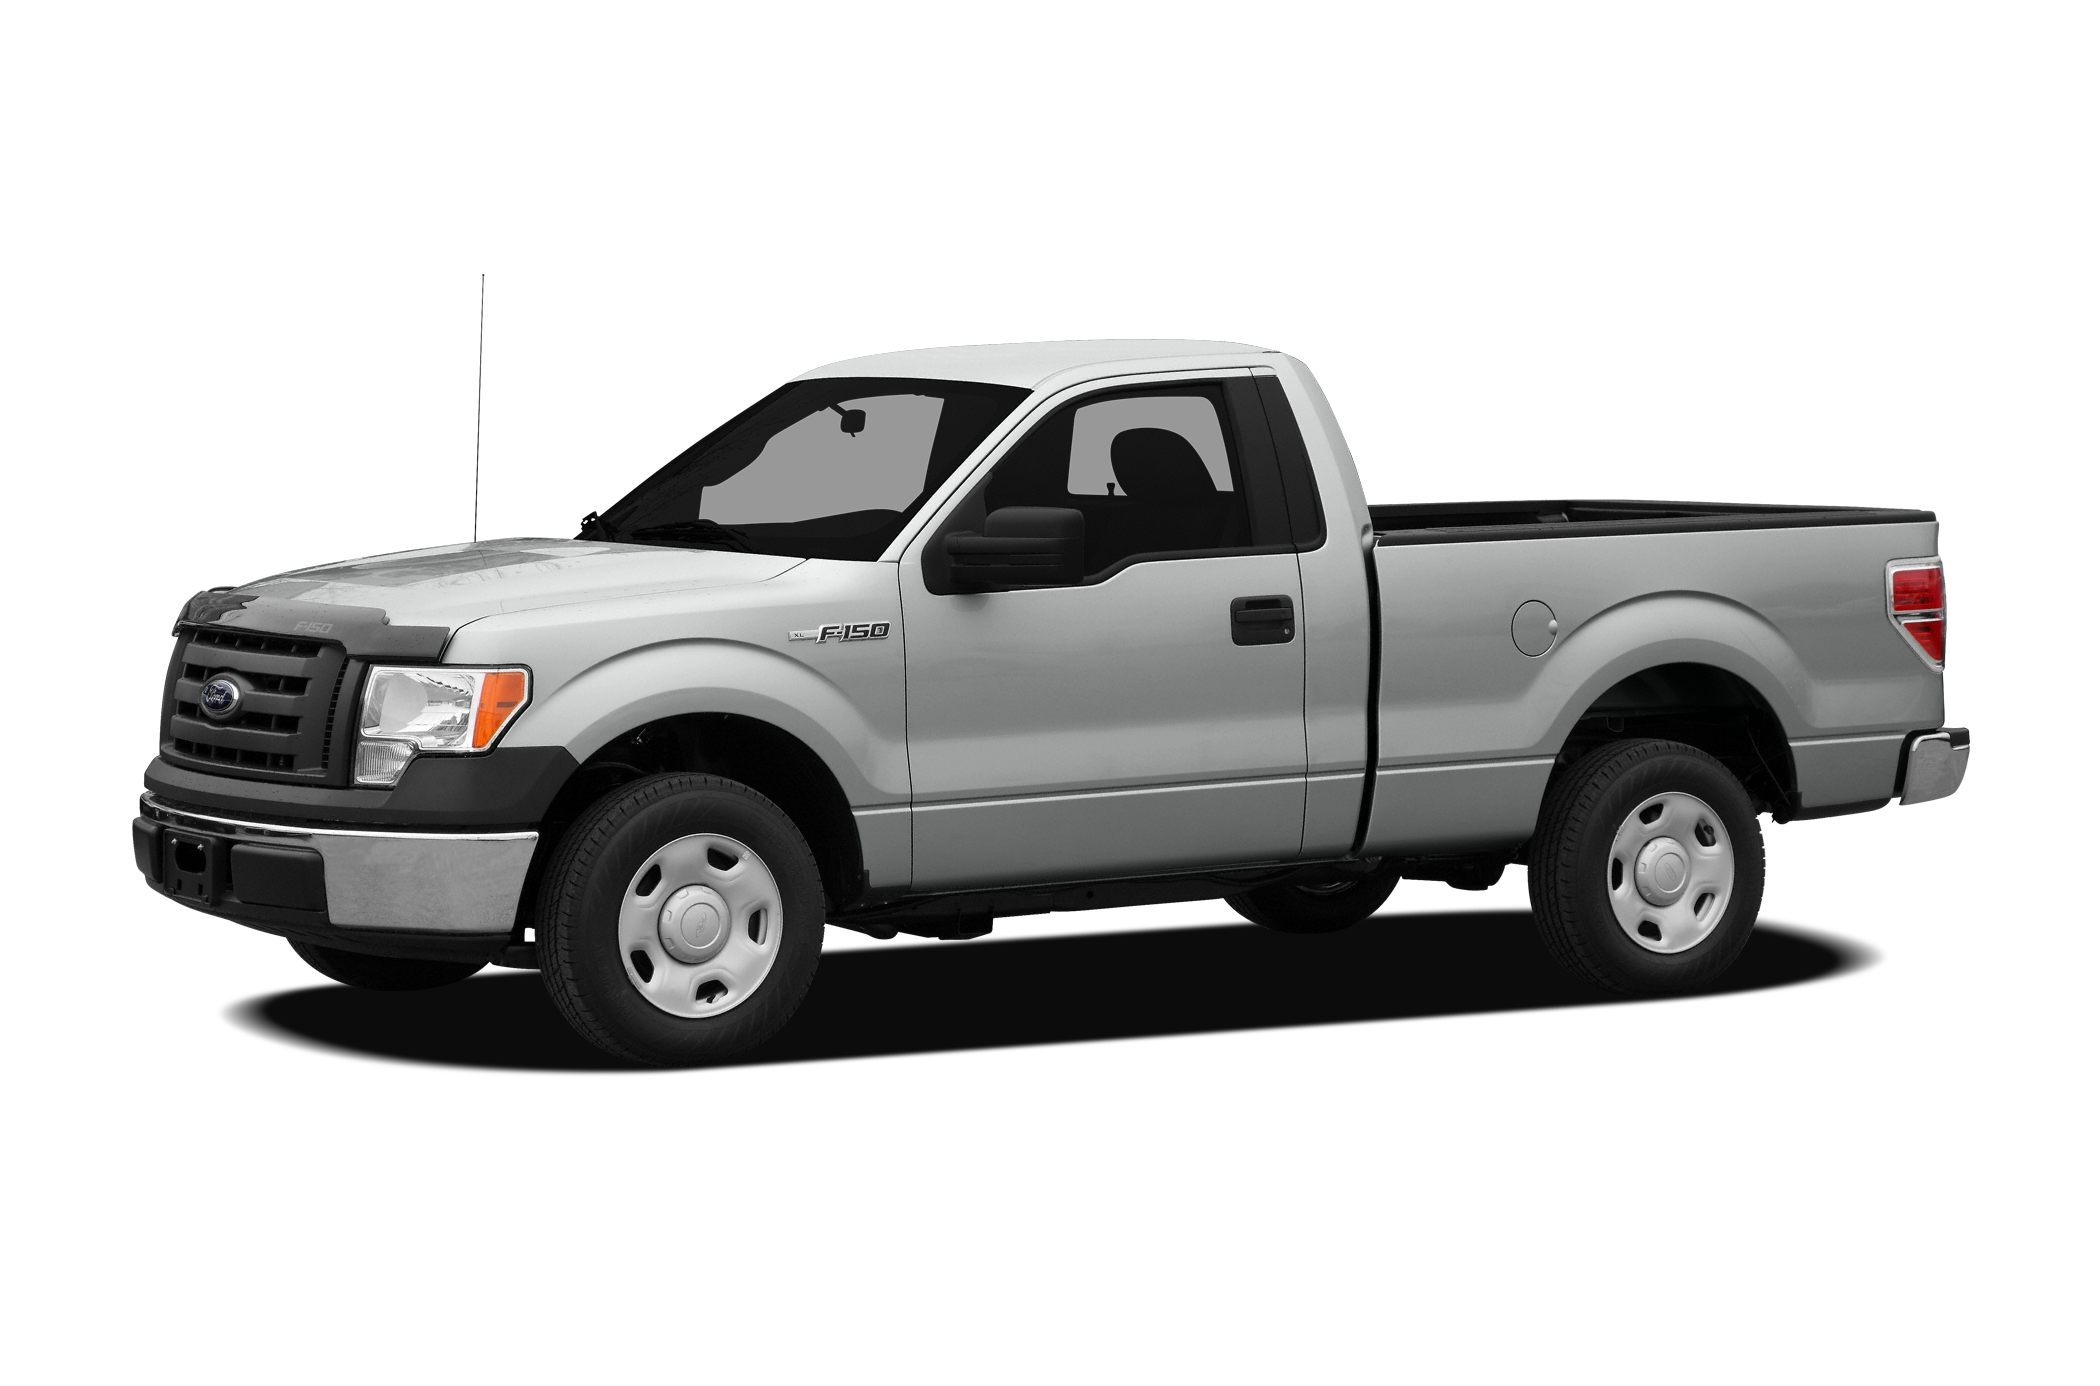 2009 Ford F-150  FLOOD ADVANTAGE PROGRAM And FULLY SERVICED AND RECONDITIONED Join us at Flood